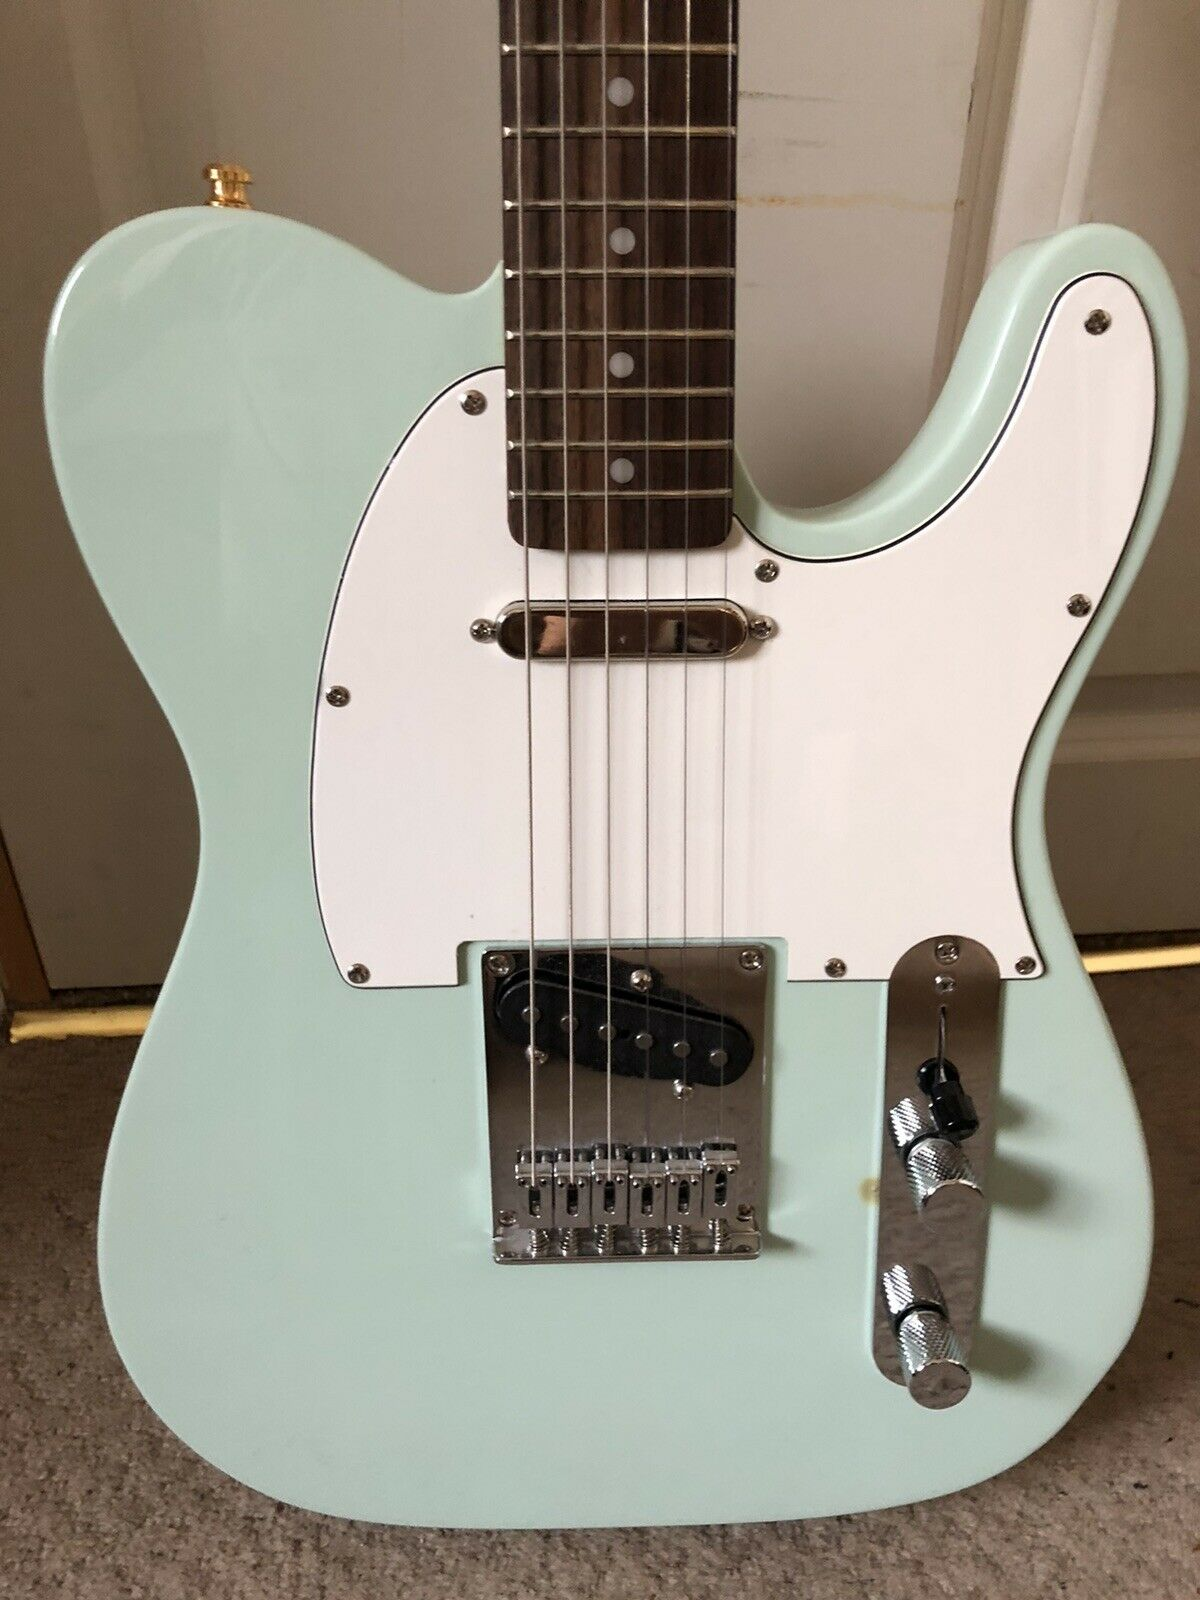 This Squier Telecaster electric guitar is for sale - Ltd Run Surf Green Squier Bullet Telecaster With Bare Knuckle Pickups!